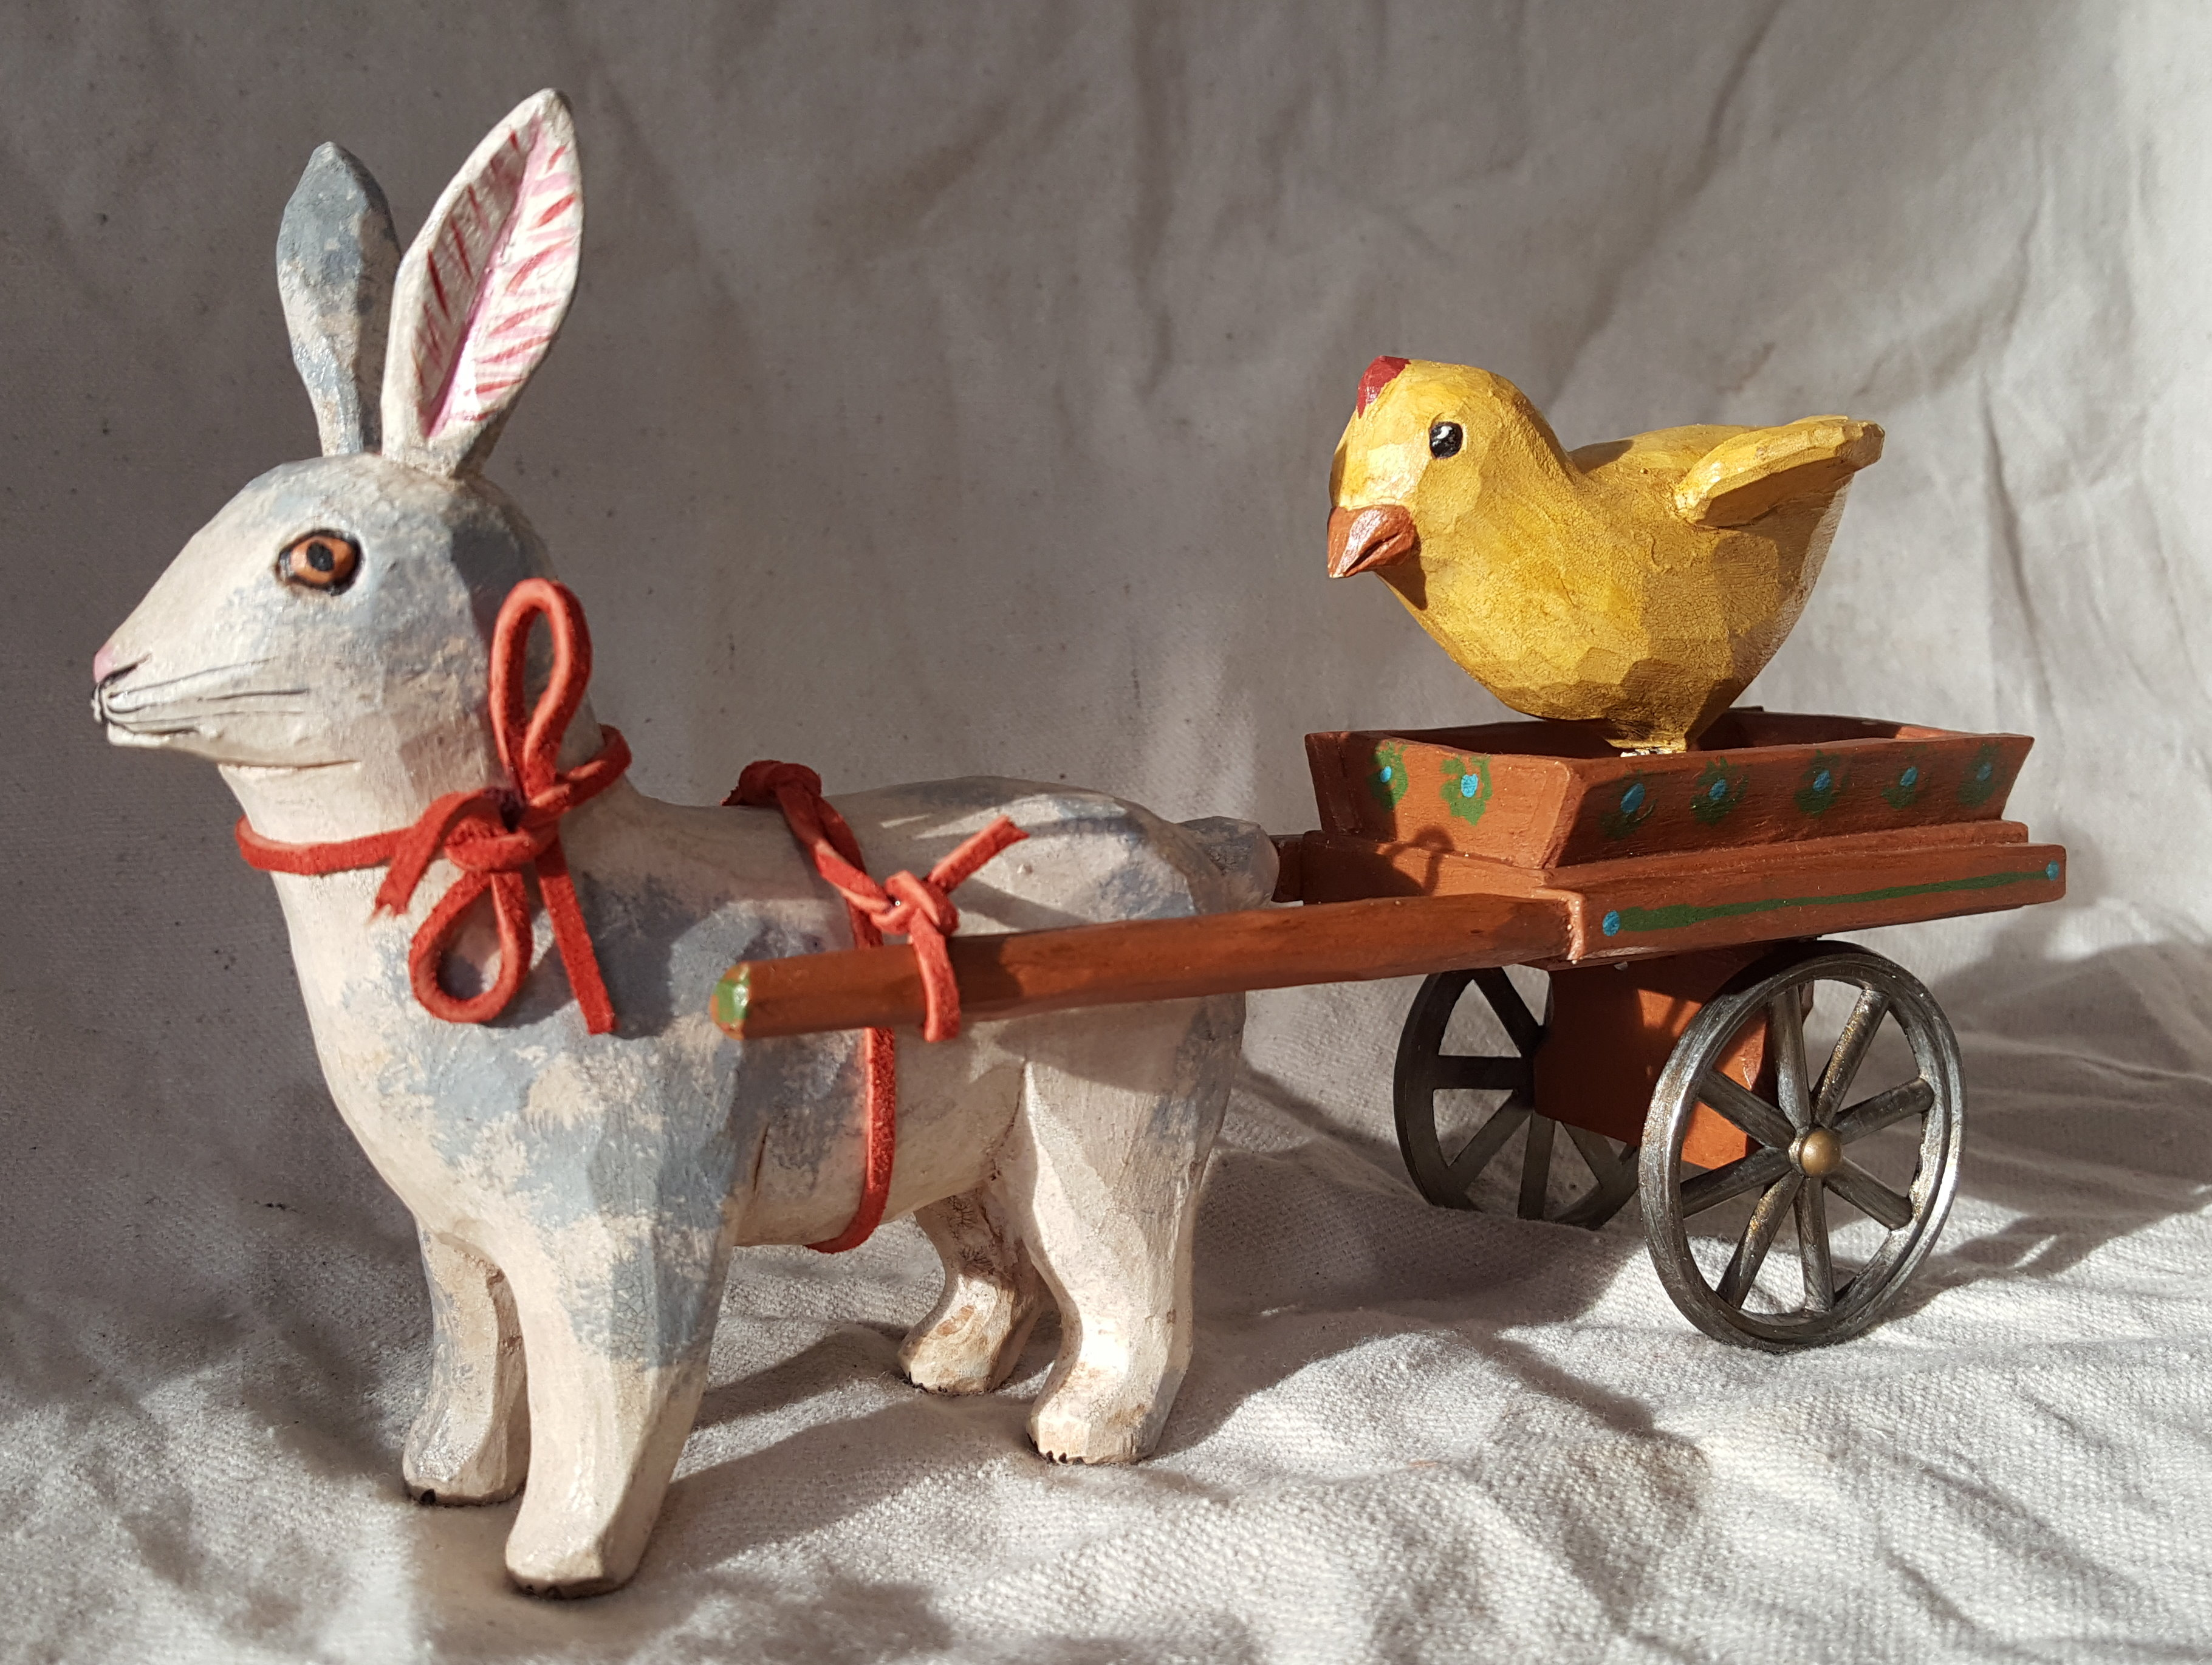 Rabbit pulling Cart with Chick